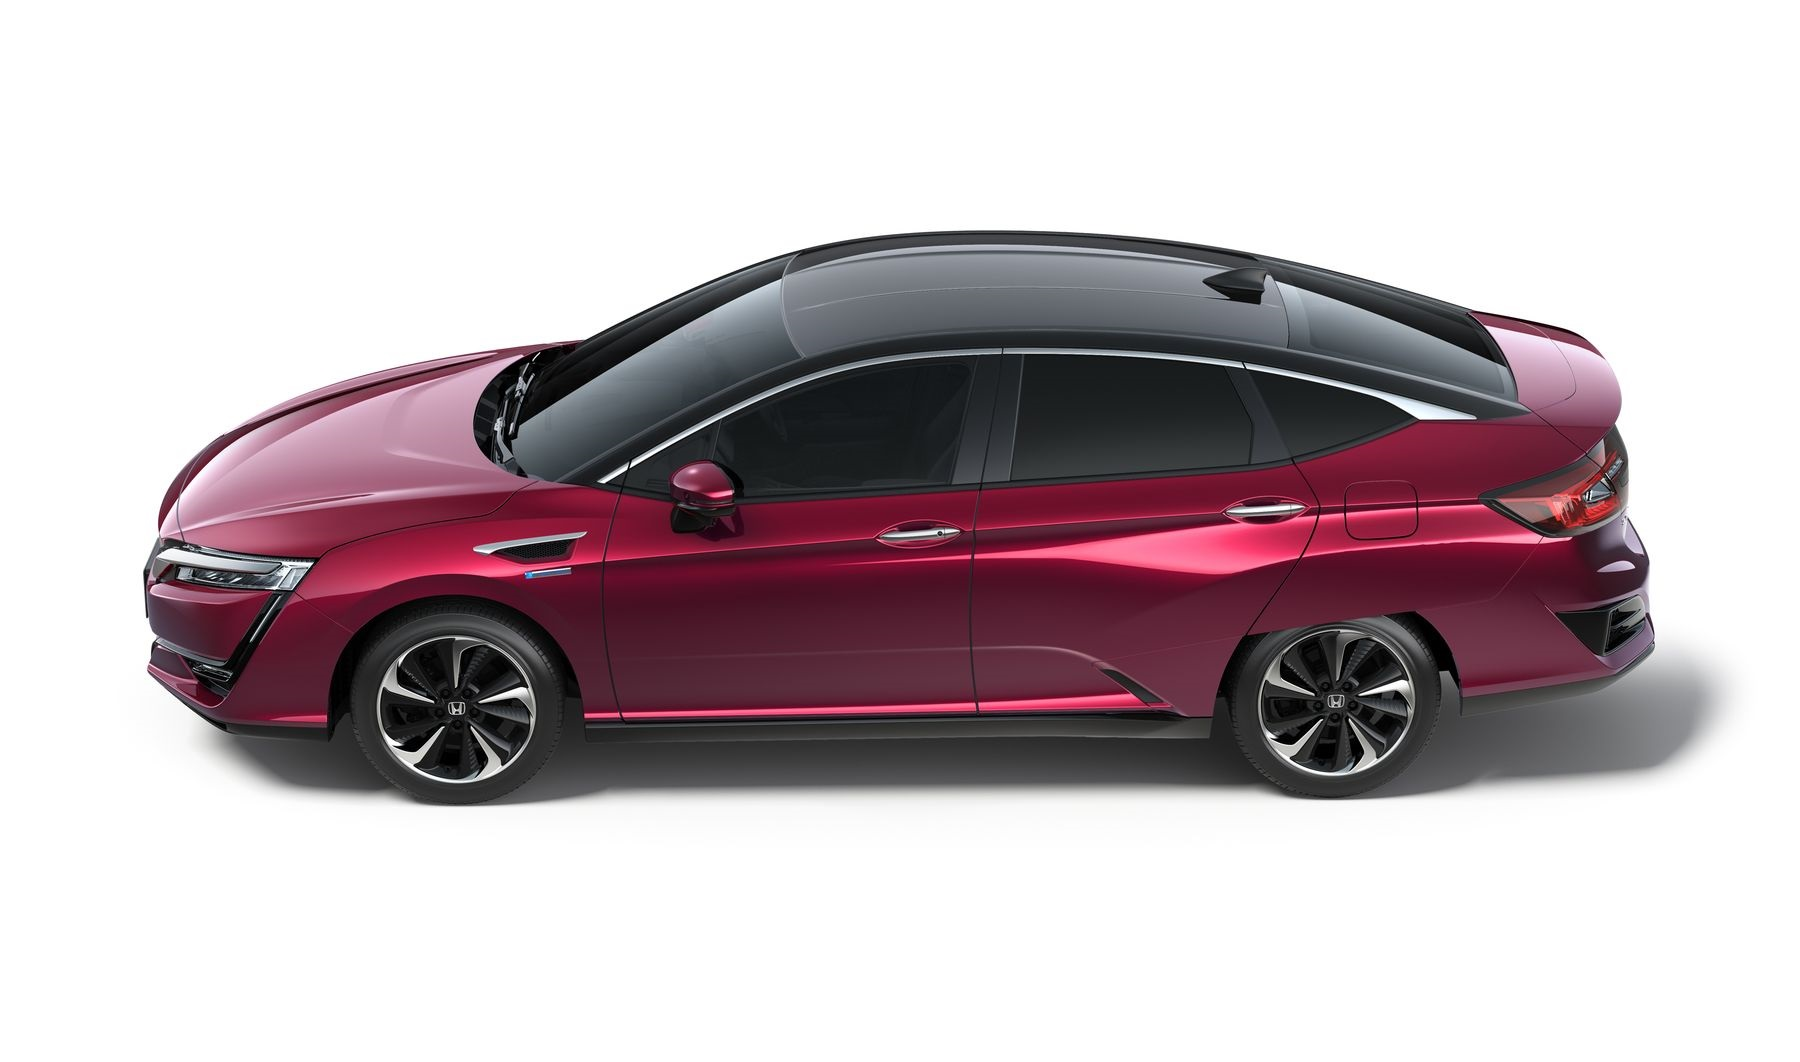 2018 Honda Clarity Release Date and Lease Option